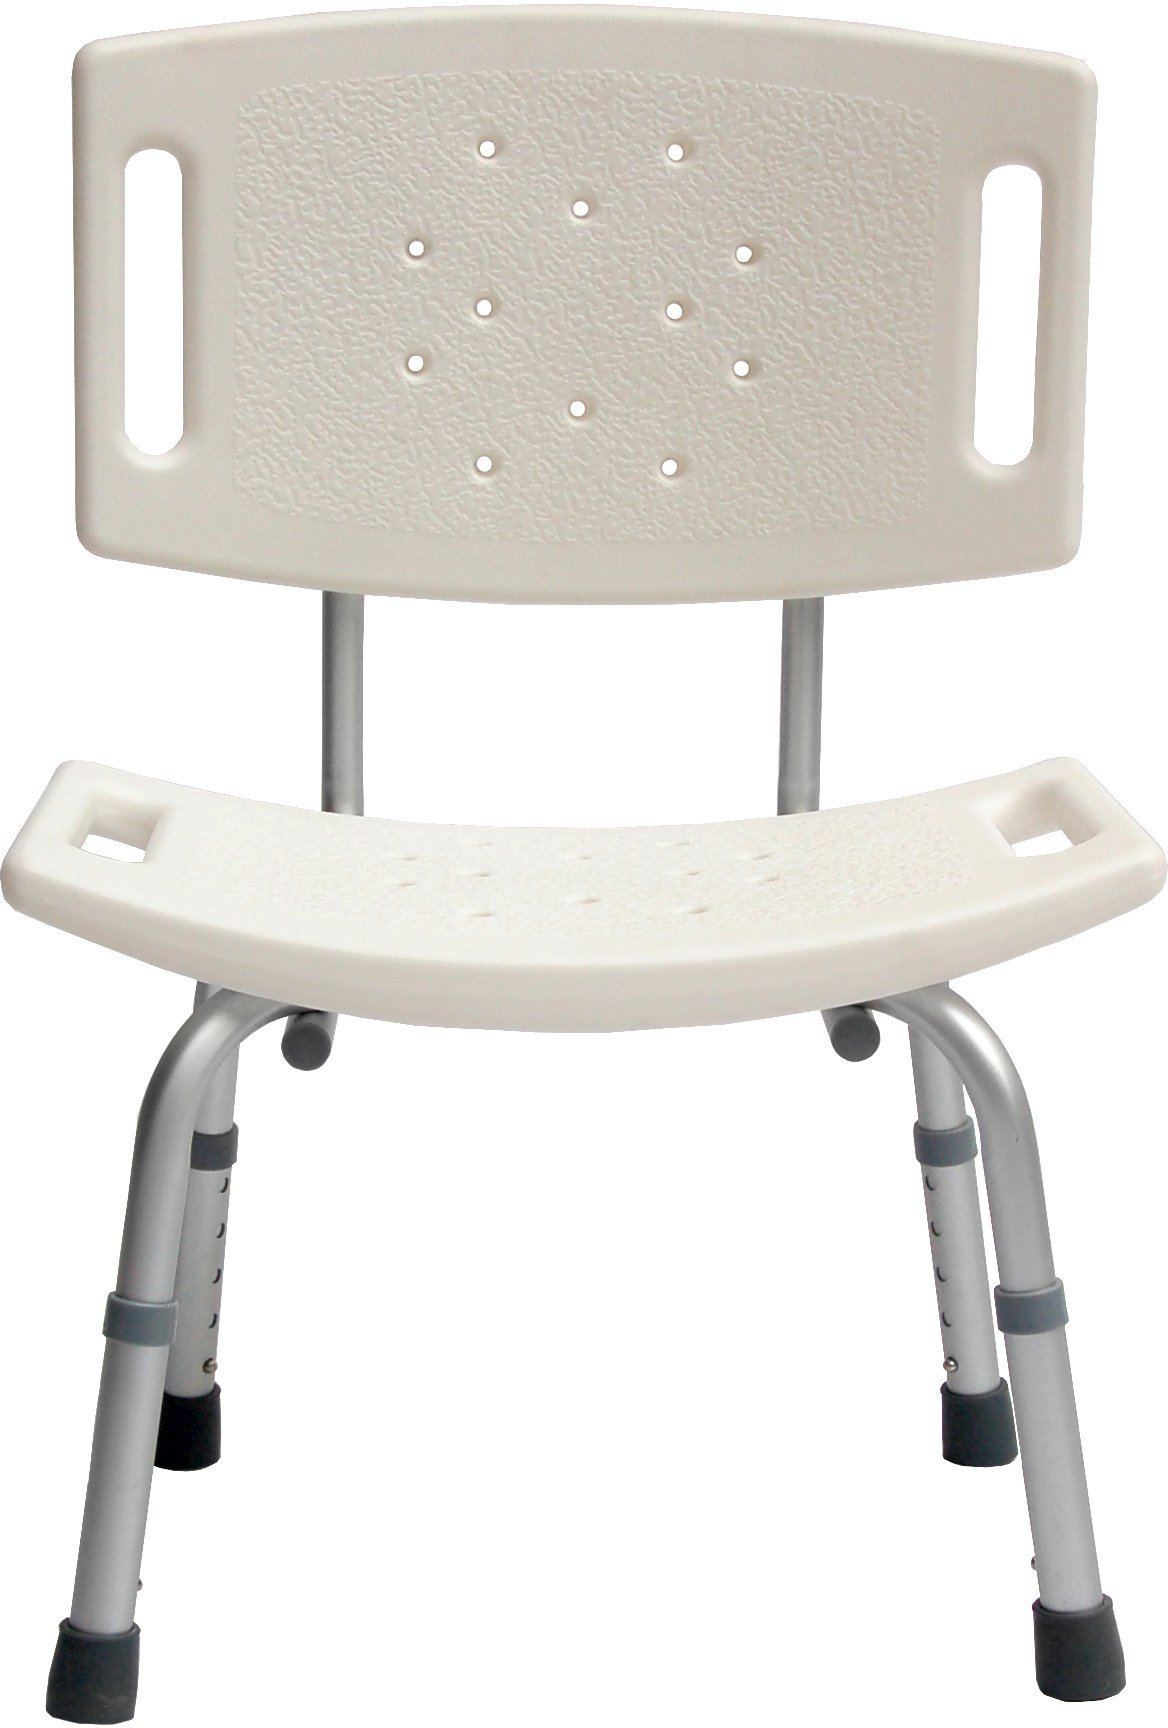 Accela Deluxe Bath & Shower Chair